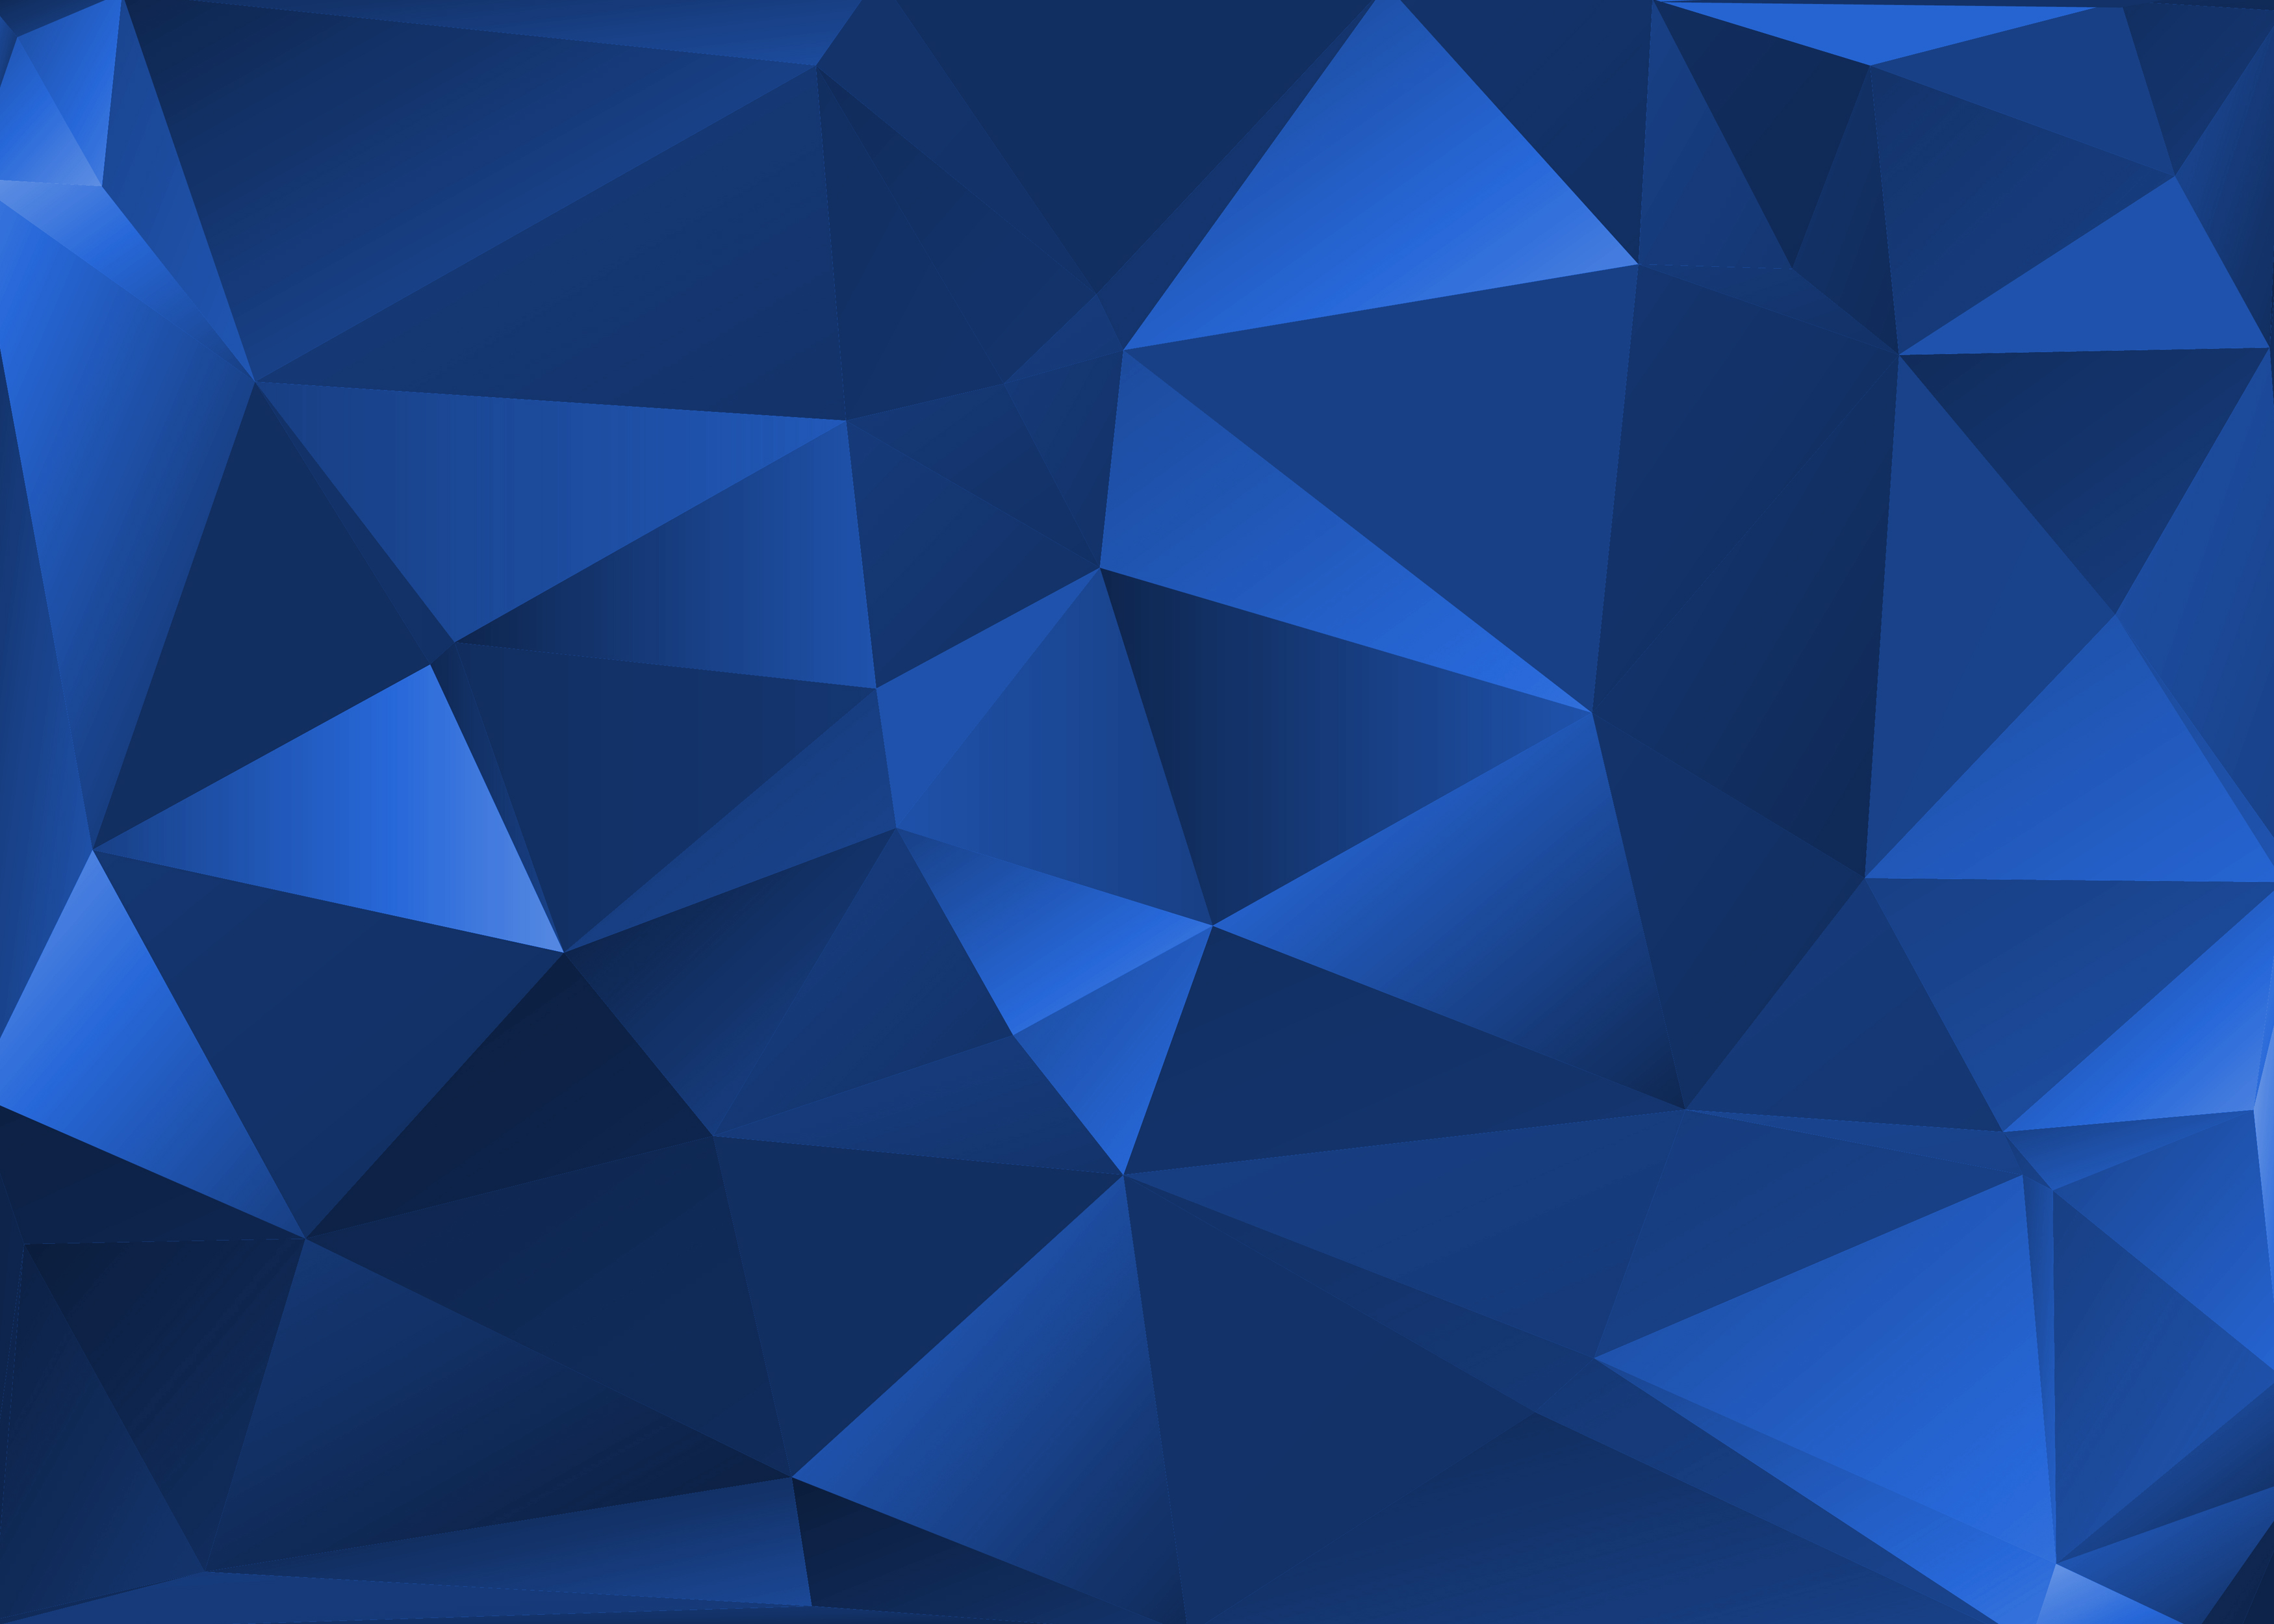 High Res Polygon Backgrounds Vol 1 Texturezine 3500x2500